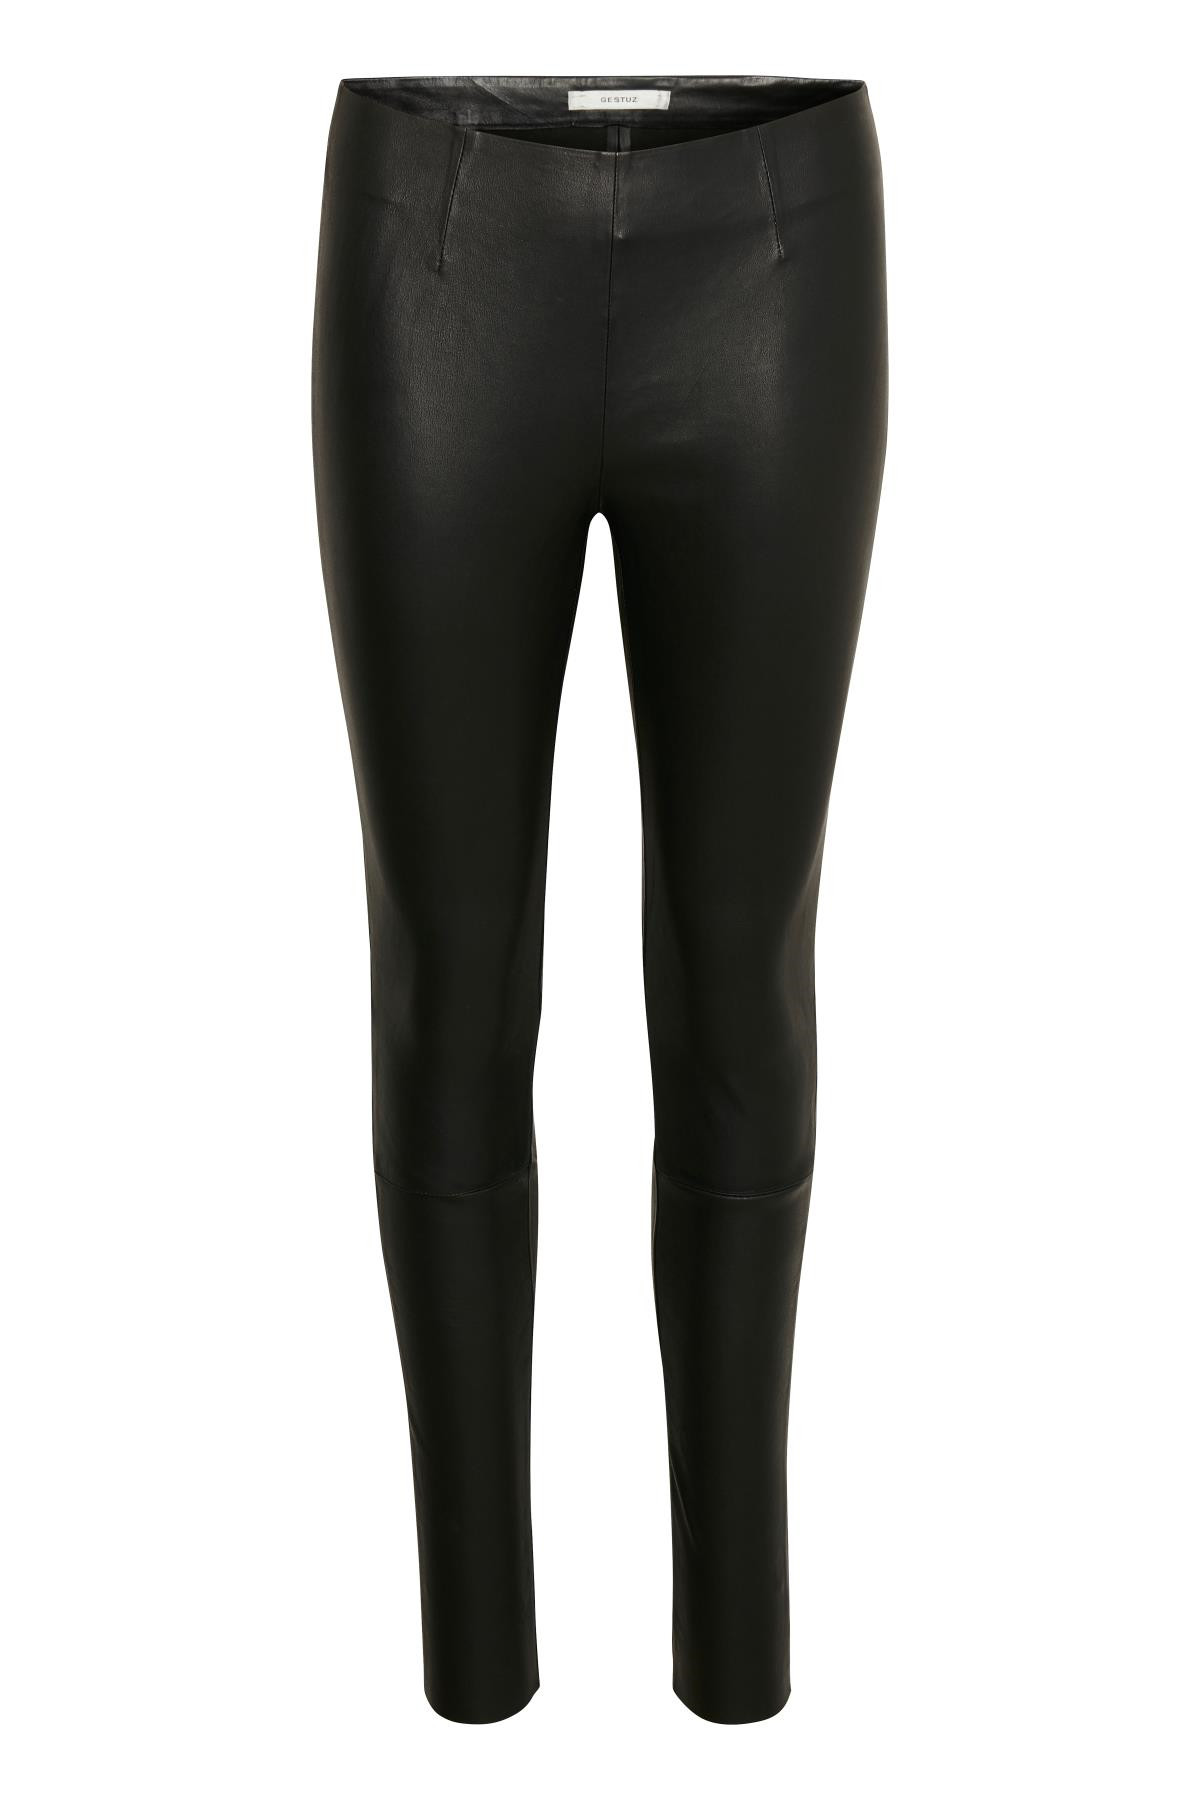 Image of   GESTUZ SASHA LEGGINGS (Black 90001, 40)